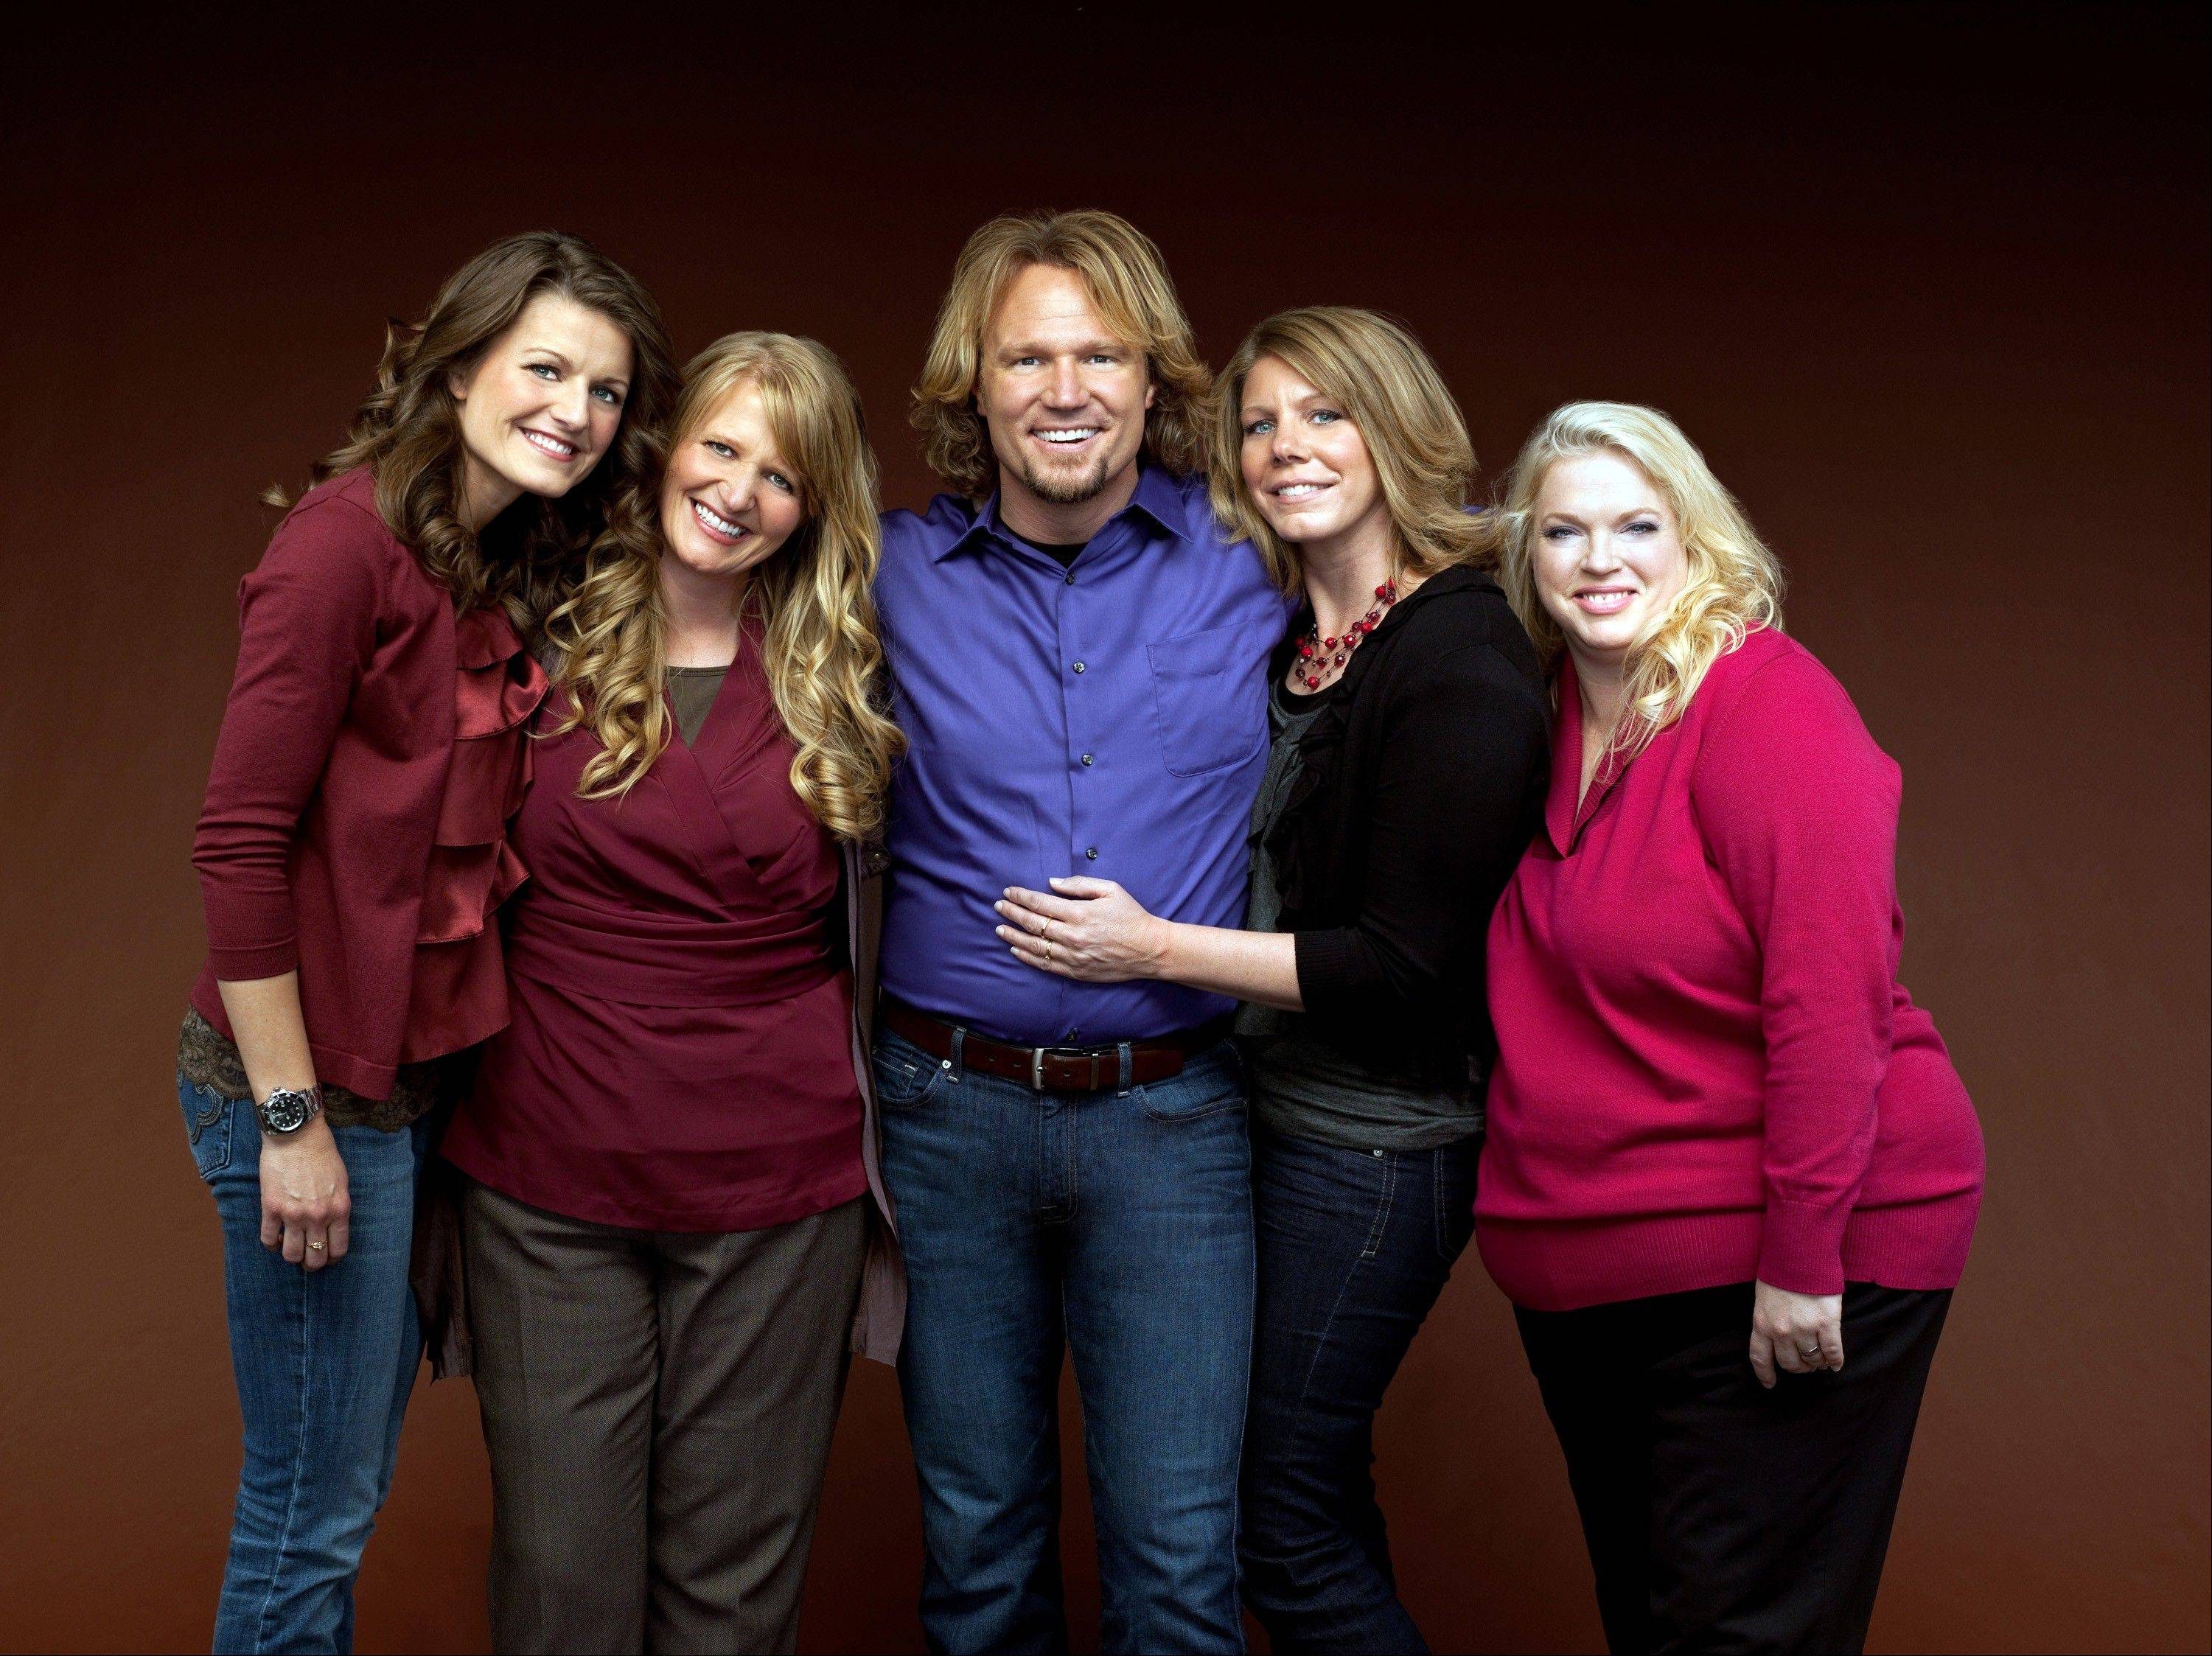 Kody Brown, center, poses with his wives � Robyn, left, Christine, Meri and Janelle � for TLC�s reality series �Sister Wives.� When the polygamous family learned in December 2013 that a federal judge in Utah struck down key parts of the state�s polygamy laws, Brown and his four wives said they cried and felt deeply emotional.